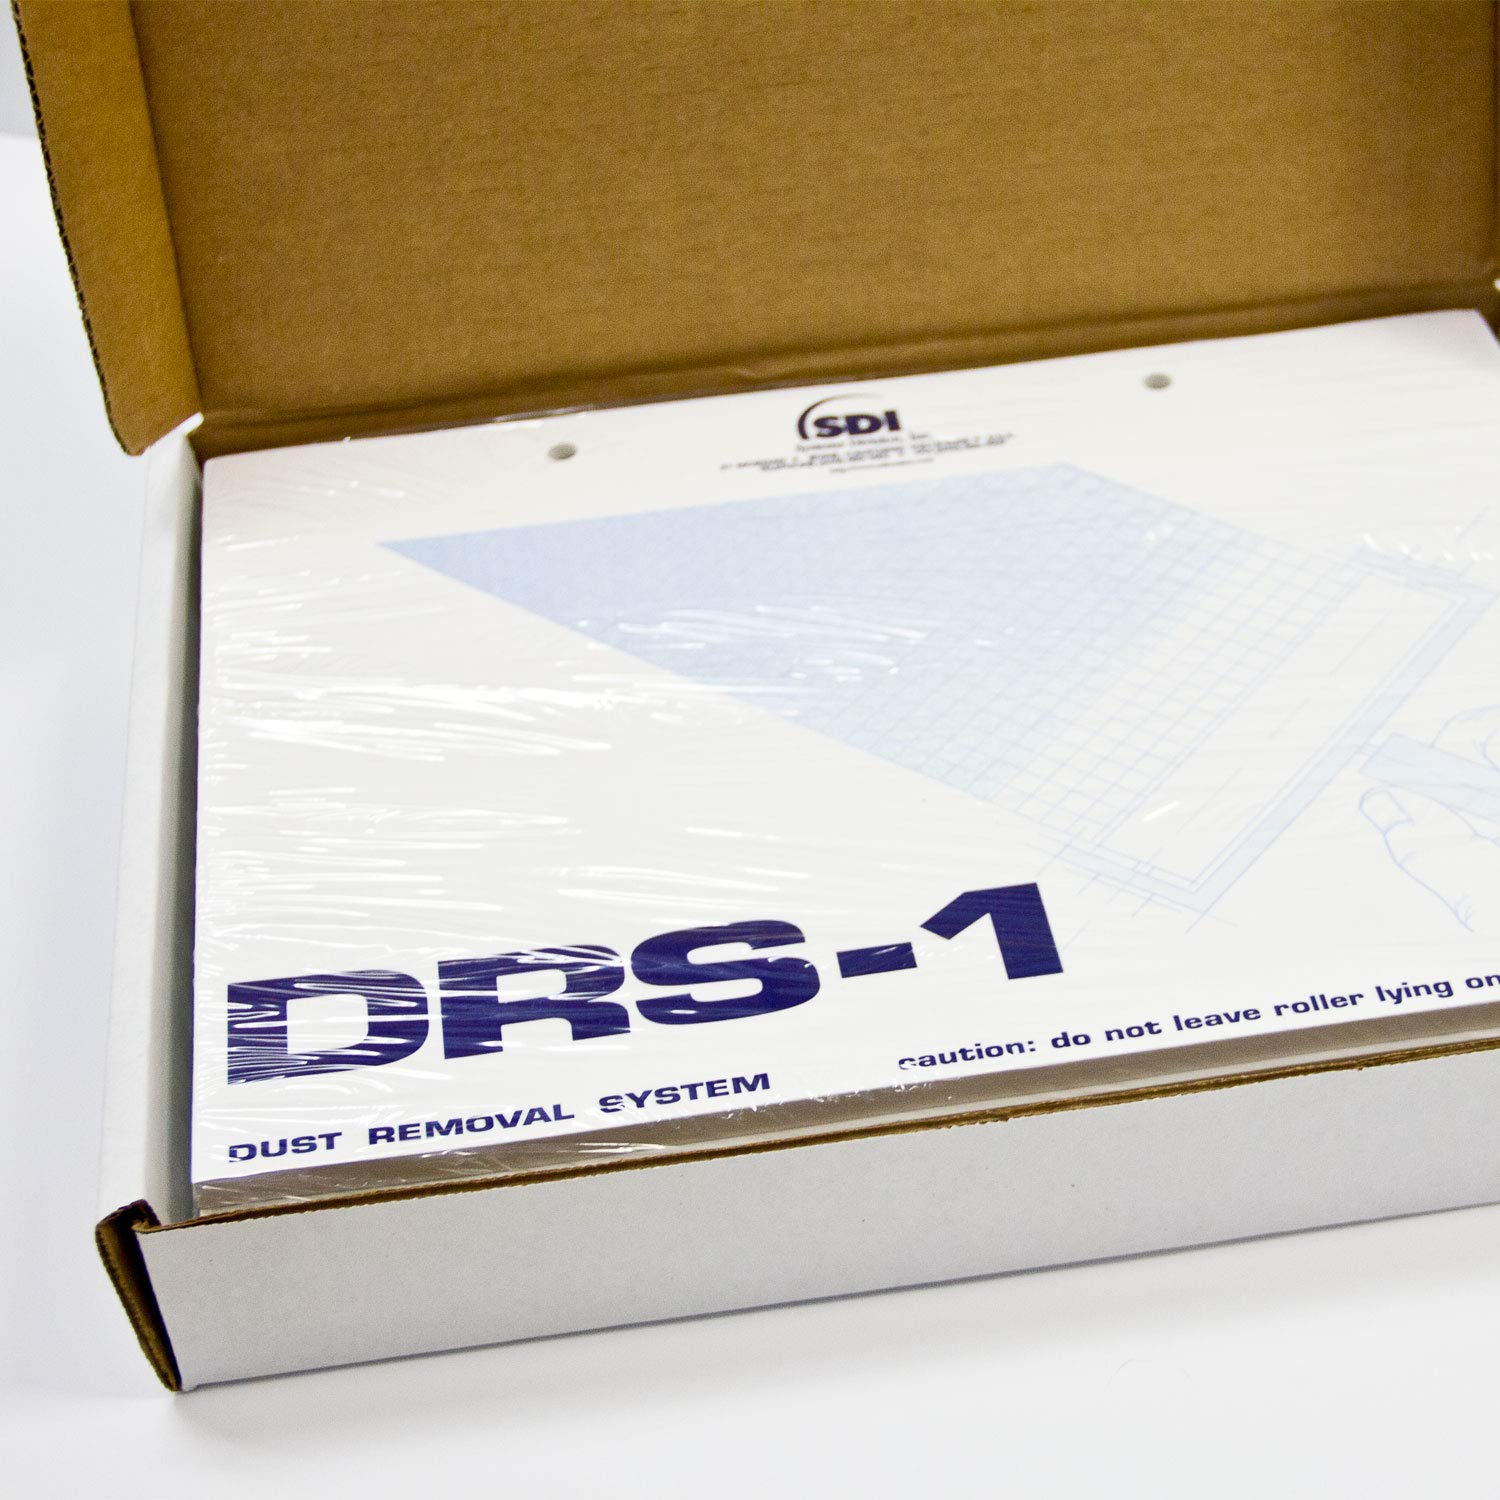 DRS Replacement Cleaning Pads - 5 Pads, 50 sh per pad by SDI, LLC. (Image #3)